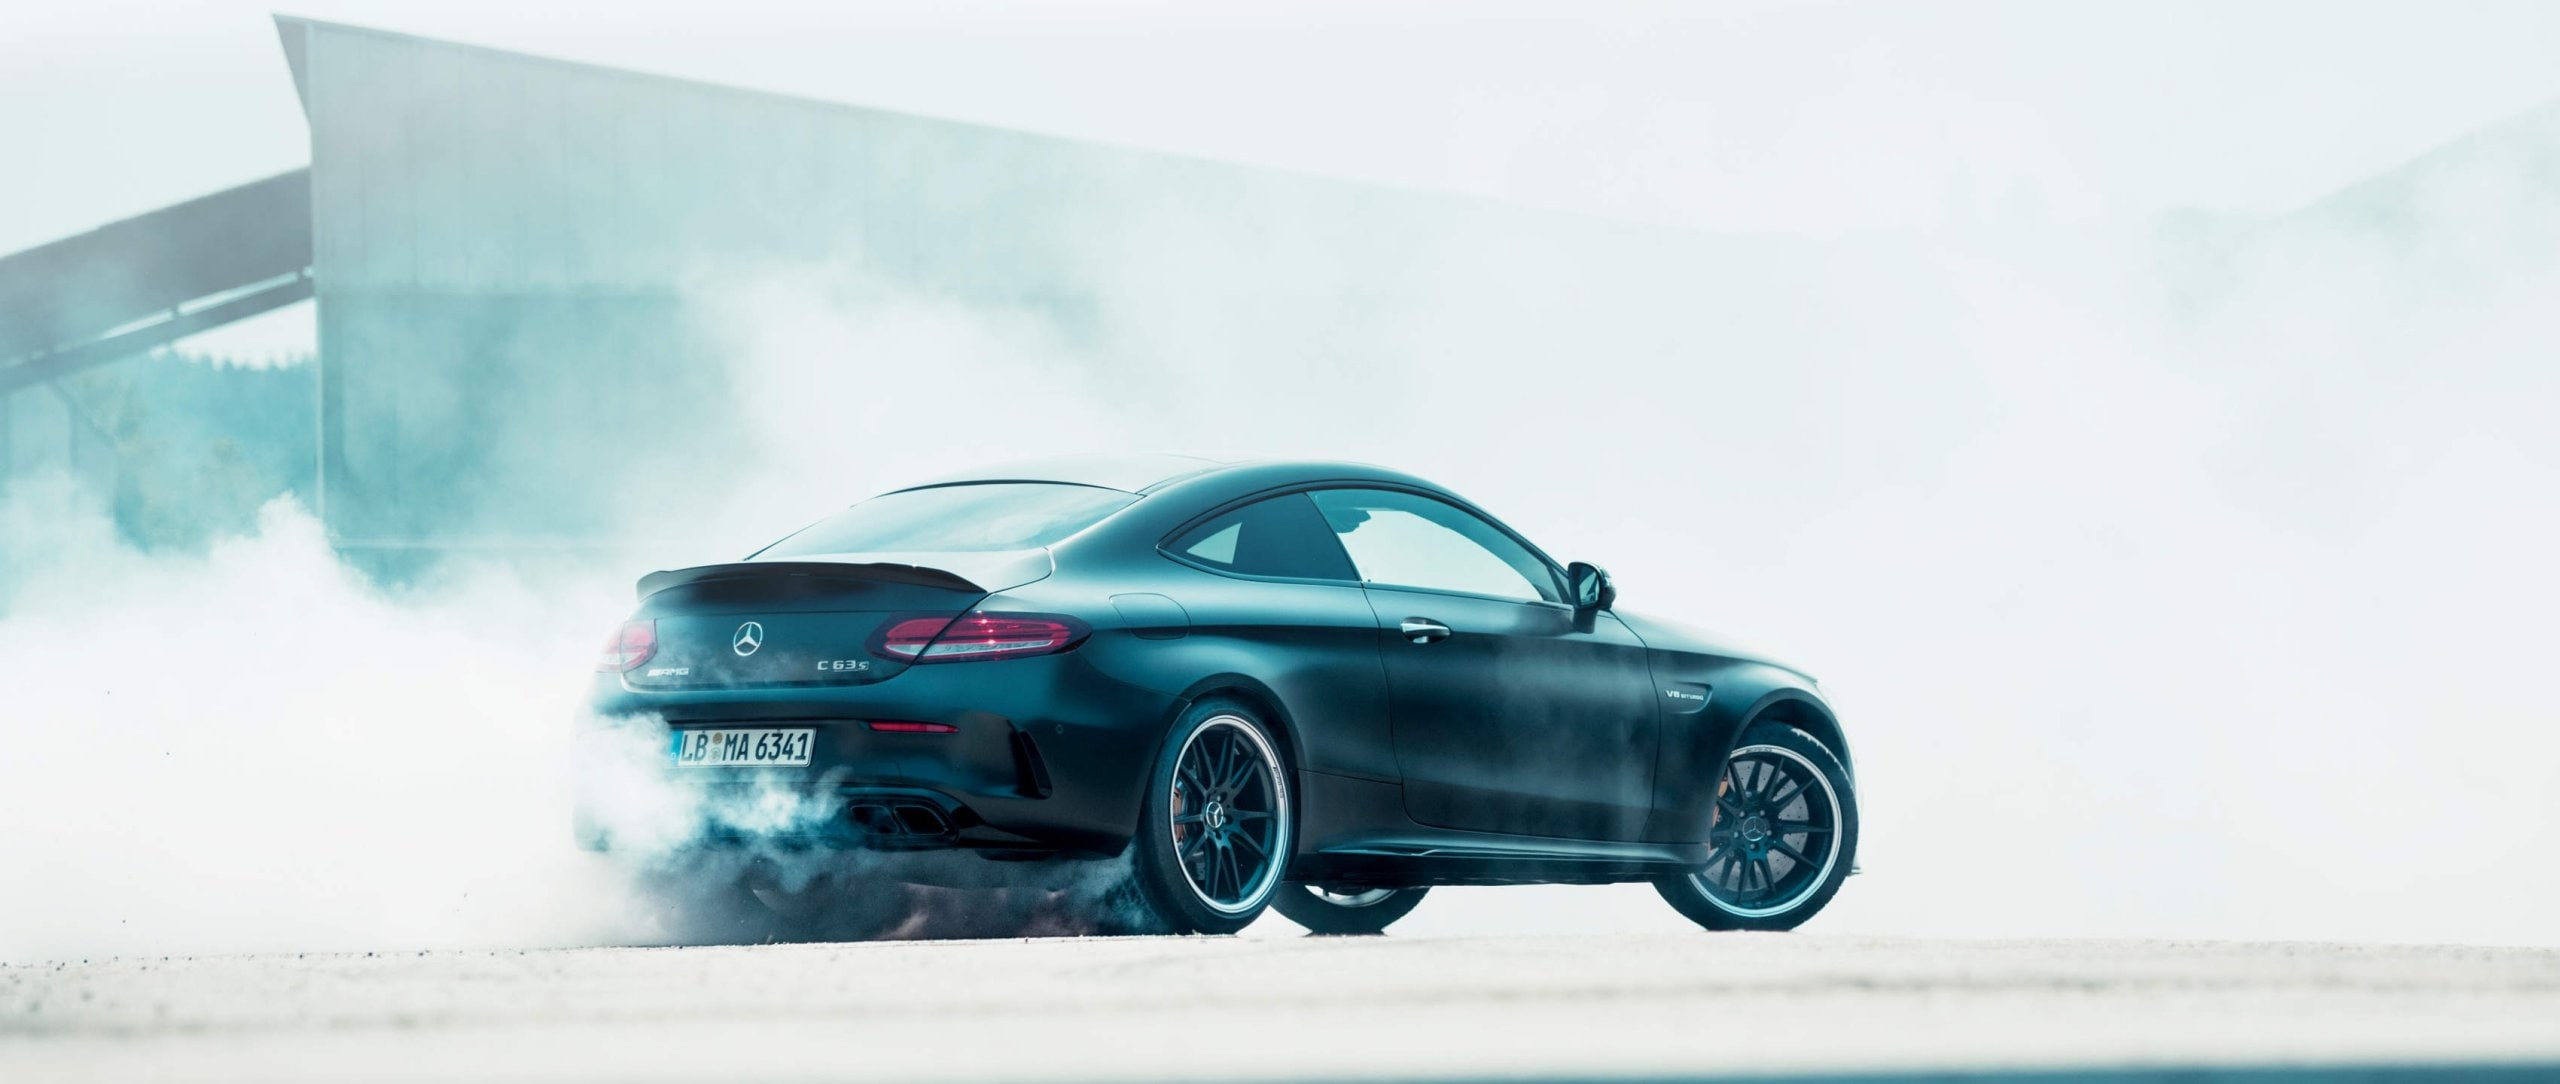 Mercedes-Benz: The Mercedes-AMG C 63 S Coupé (C 205) disappears in a thick cloud of smoke while drifting.